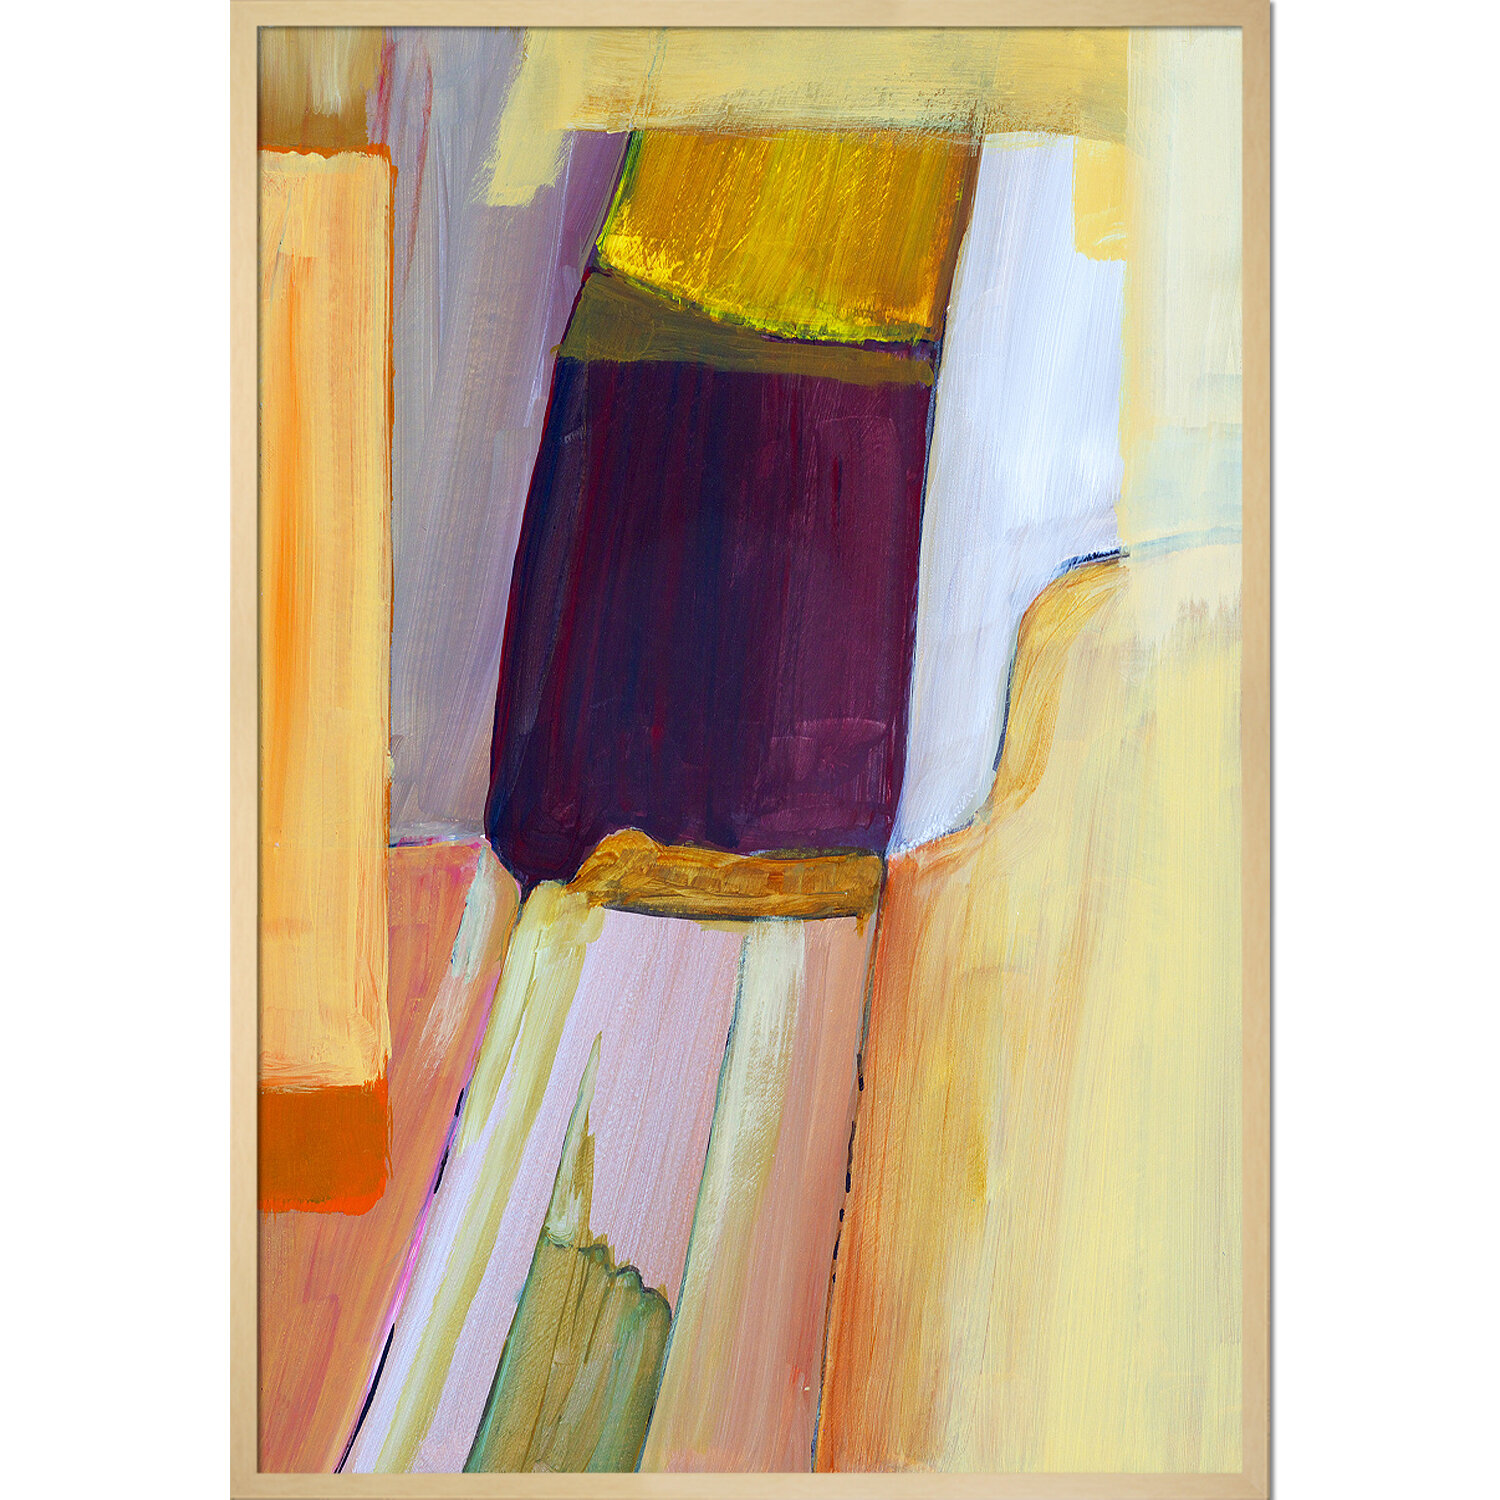 Tori Home Artisbe An Abstract Composition By Clive Watts Wrapped Canvas Painting Print Wayfair